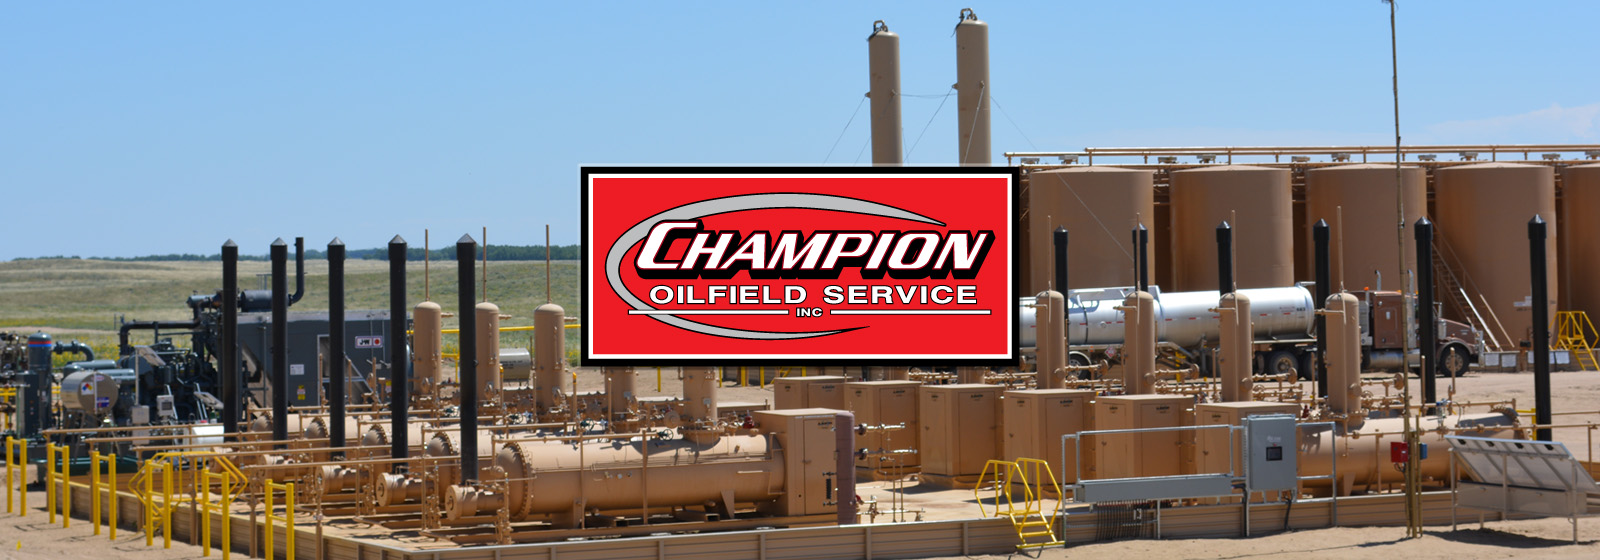 Champion Oilfield Service